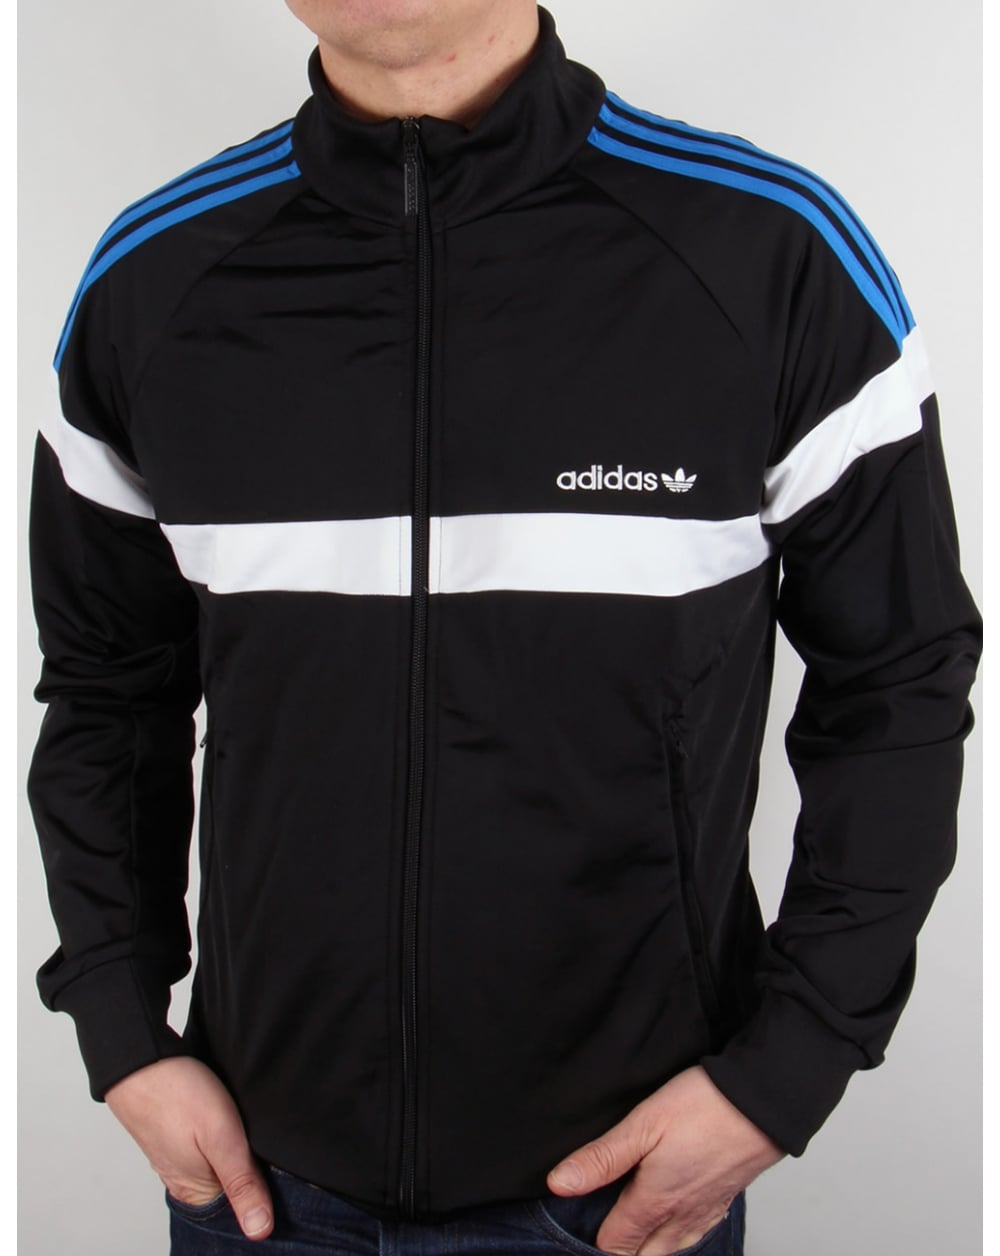 adidas originals itasca track top black white jacket tracksuit. Black Bedroom Furniture Sets. Home Design Ideas